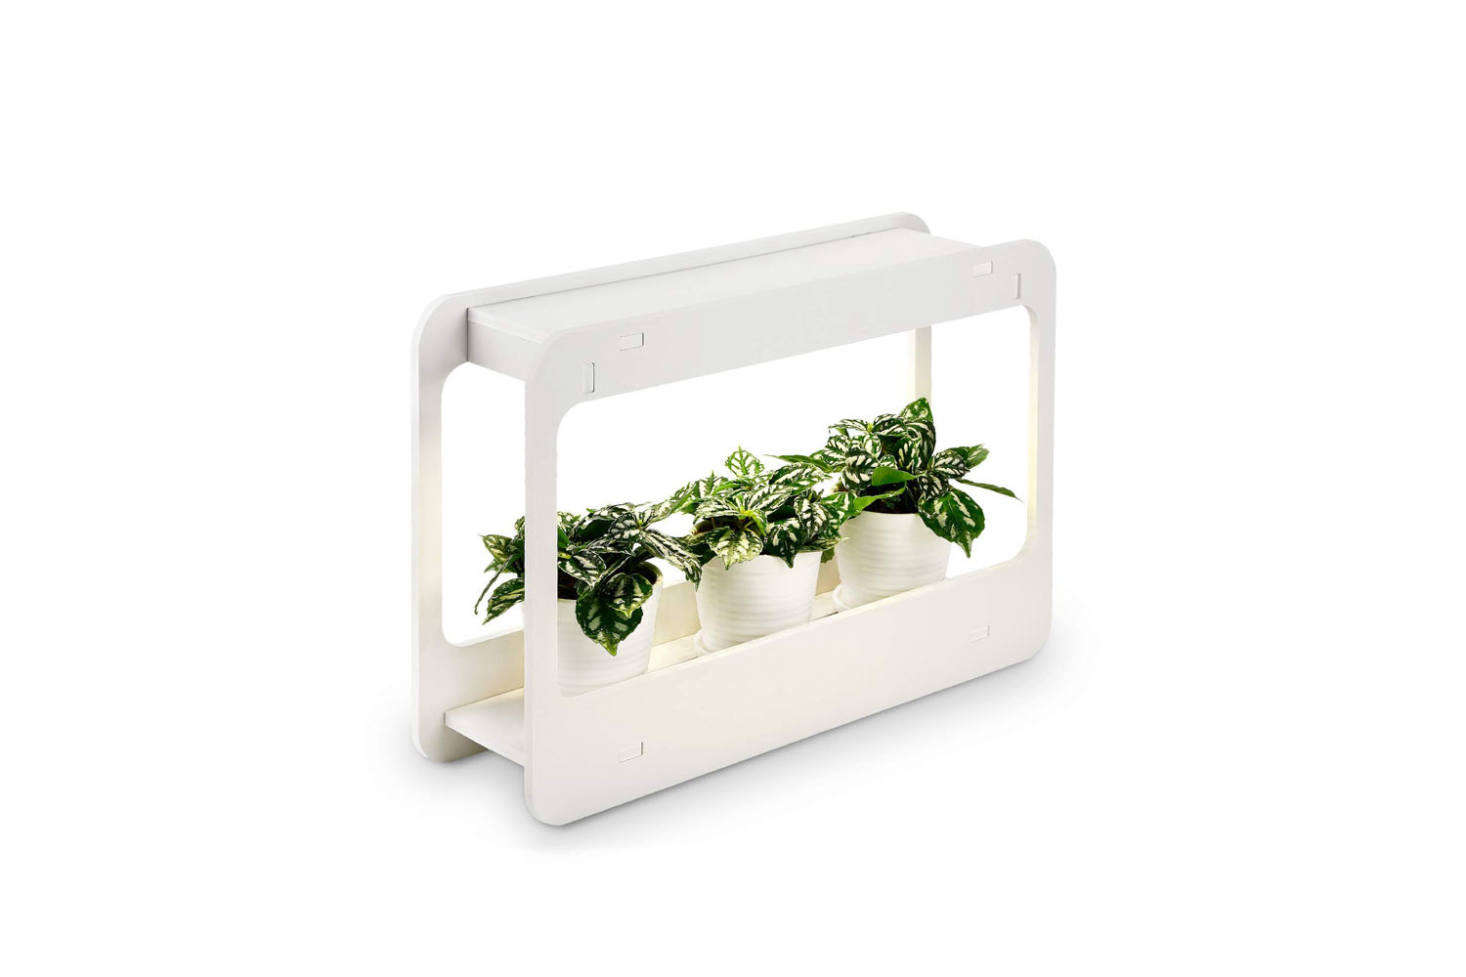 The Plant Grow LED Light Kit Indoor Herb Garden comes with a smart timer, a cool white light optimized for growing; $38.